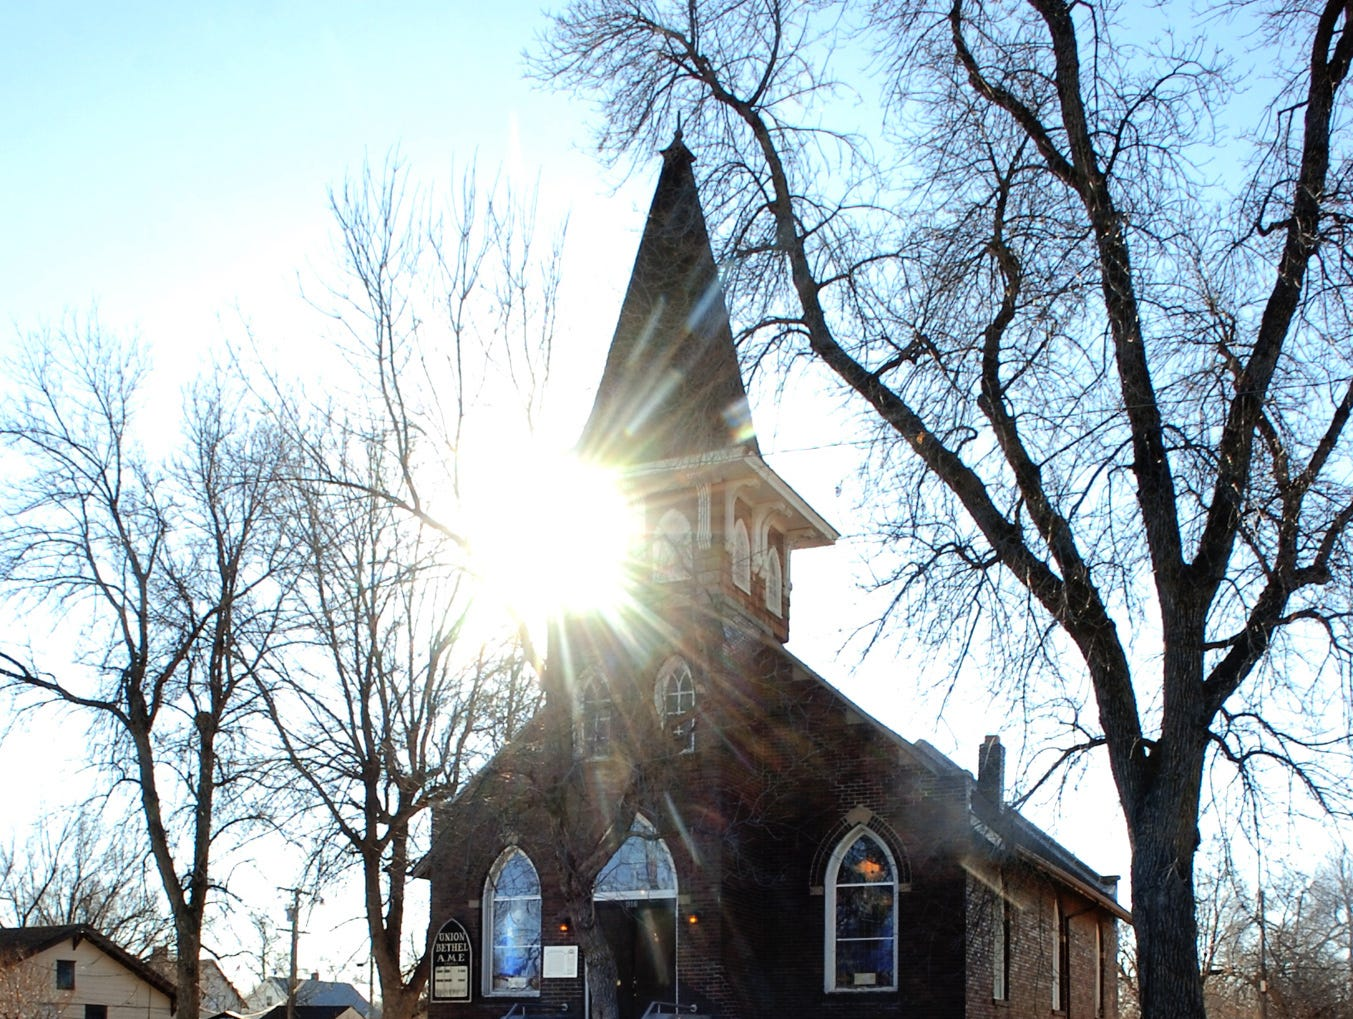 The Union Bethel African Methodist Episcopal church at 916 5th Ave. S. in Great Falls